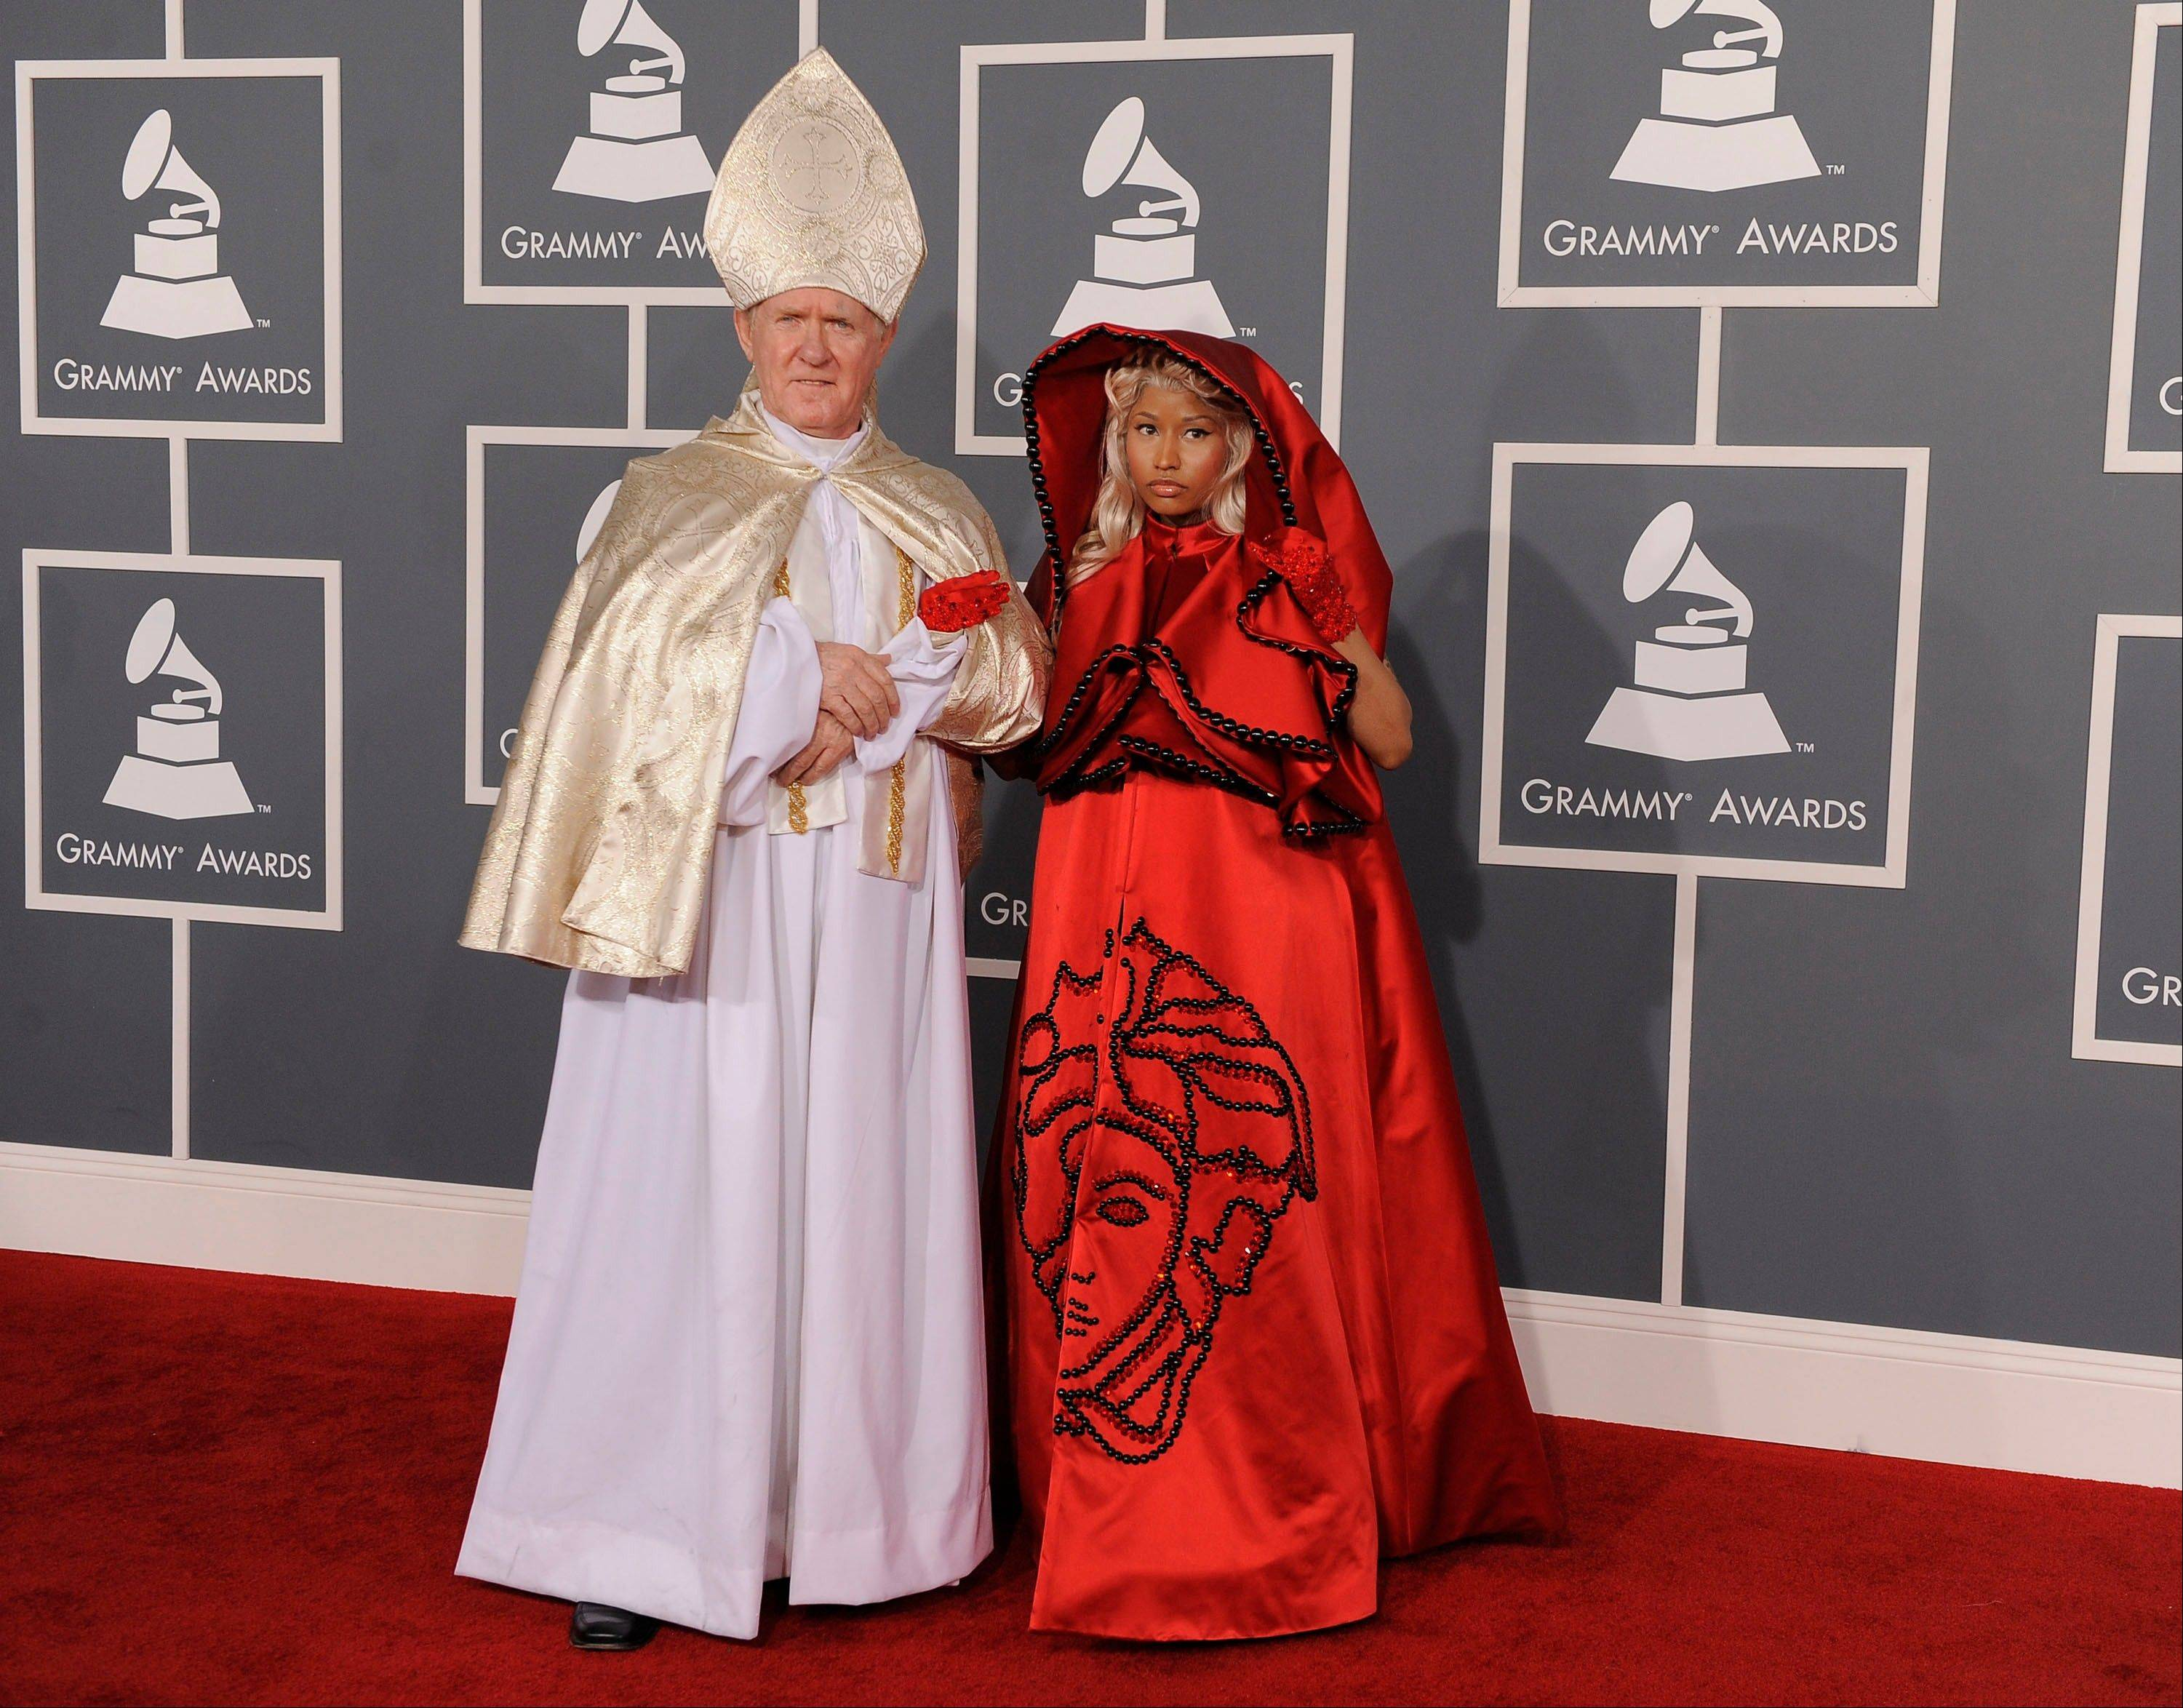 Nicki Minaj, right, and her guest arrive Sunday at the 54th annual Grammy Awards in Los Angeles.